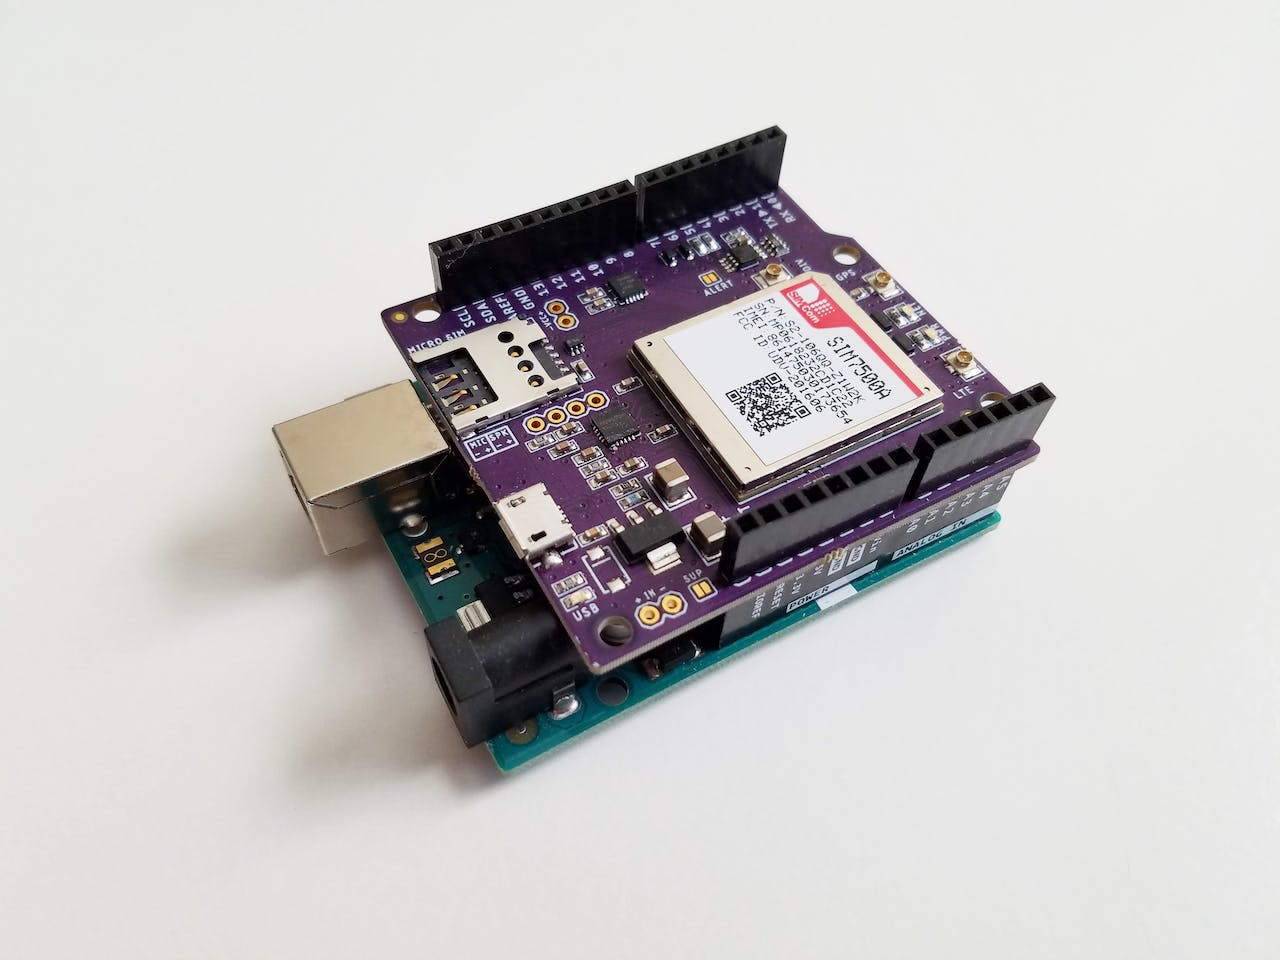 Lte Cellular Shield For Arduino With Voice Power The Electret Mic Through Uno As Shown In Circuit Diagram